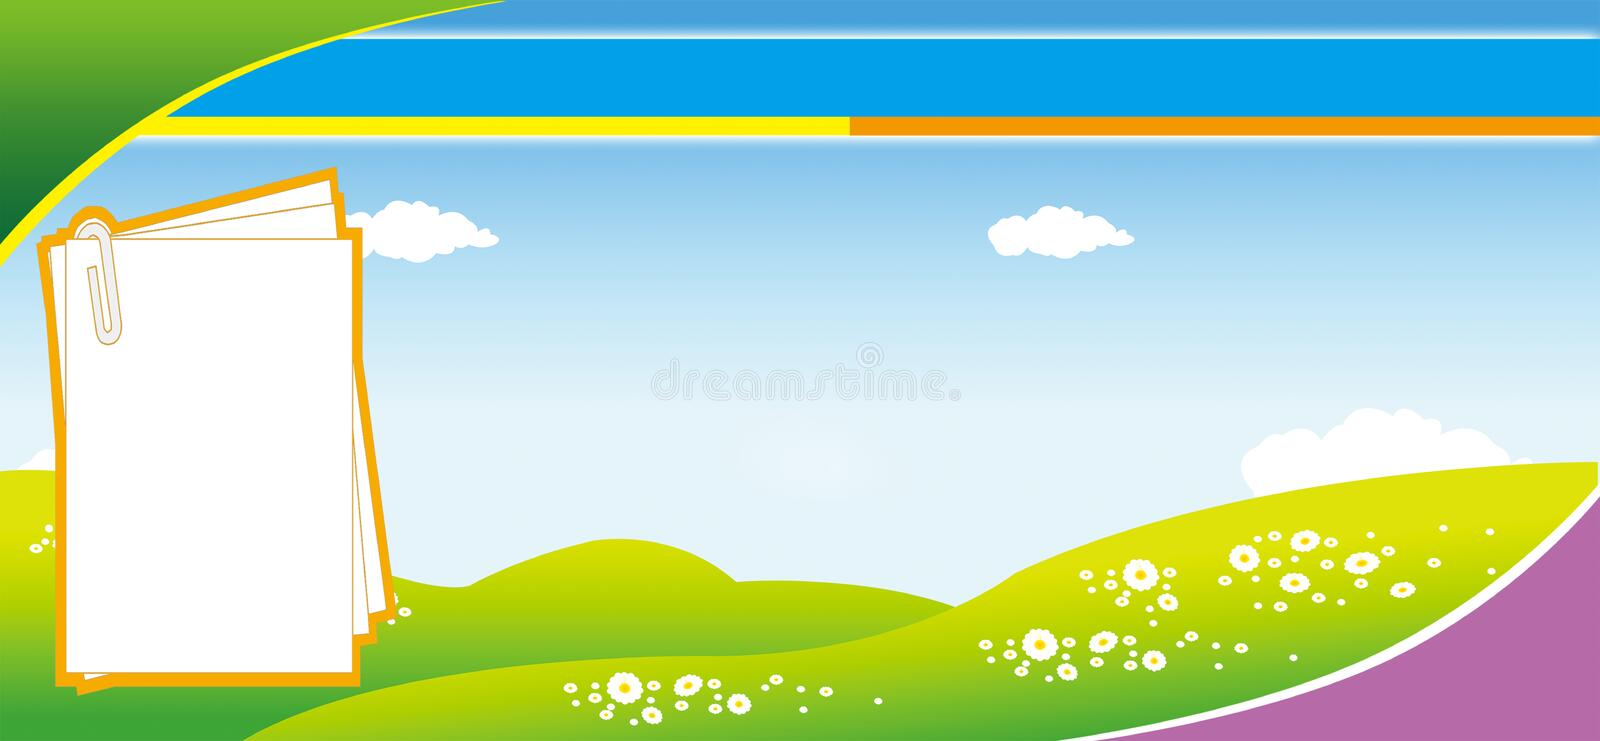 Green hill background stock images